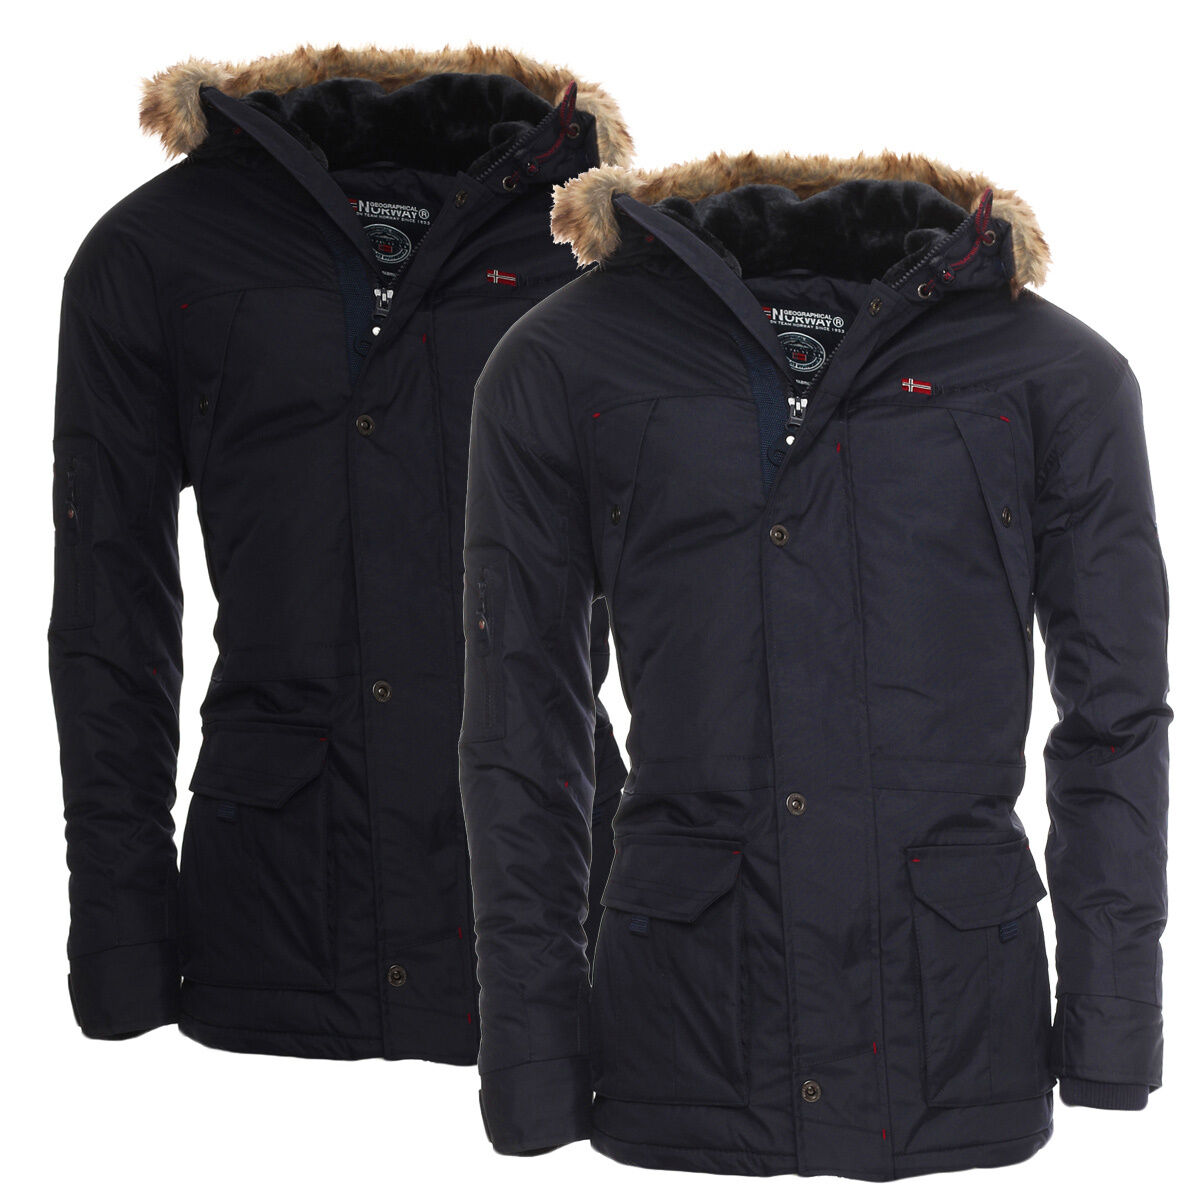 geographical norway warme gef tterte herren alaska winterjacke jacke parka wow eur 89 90. Black Bedroom Furniture Sets. Home Design Ideas